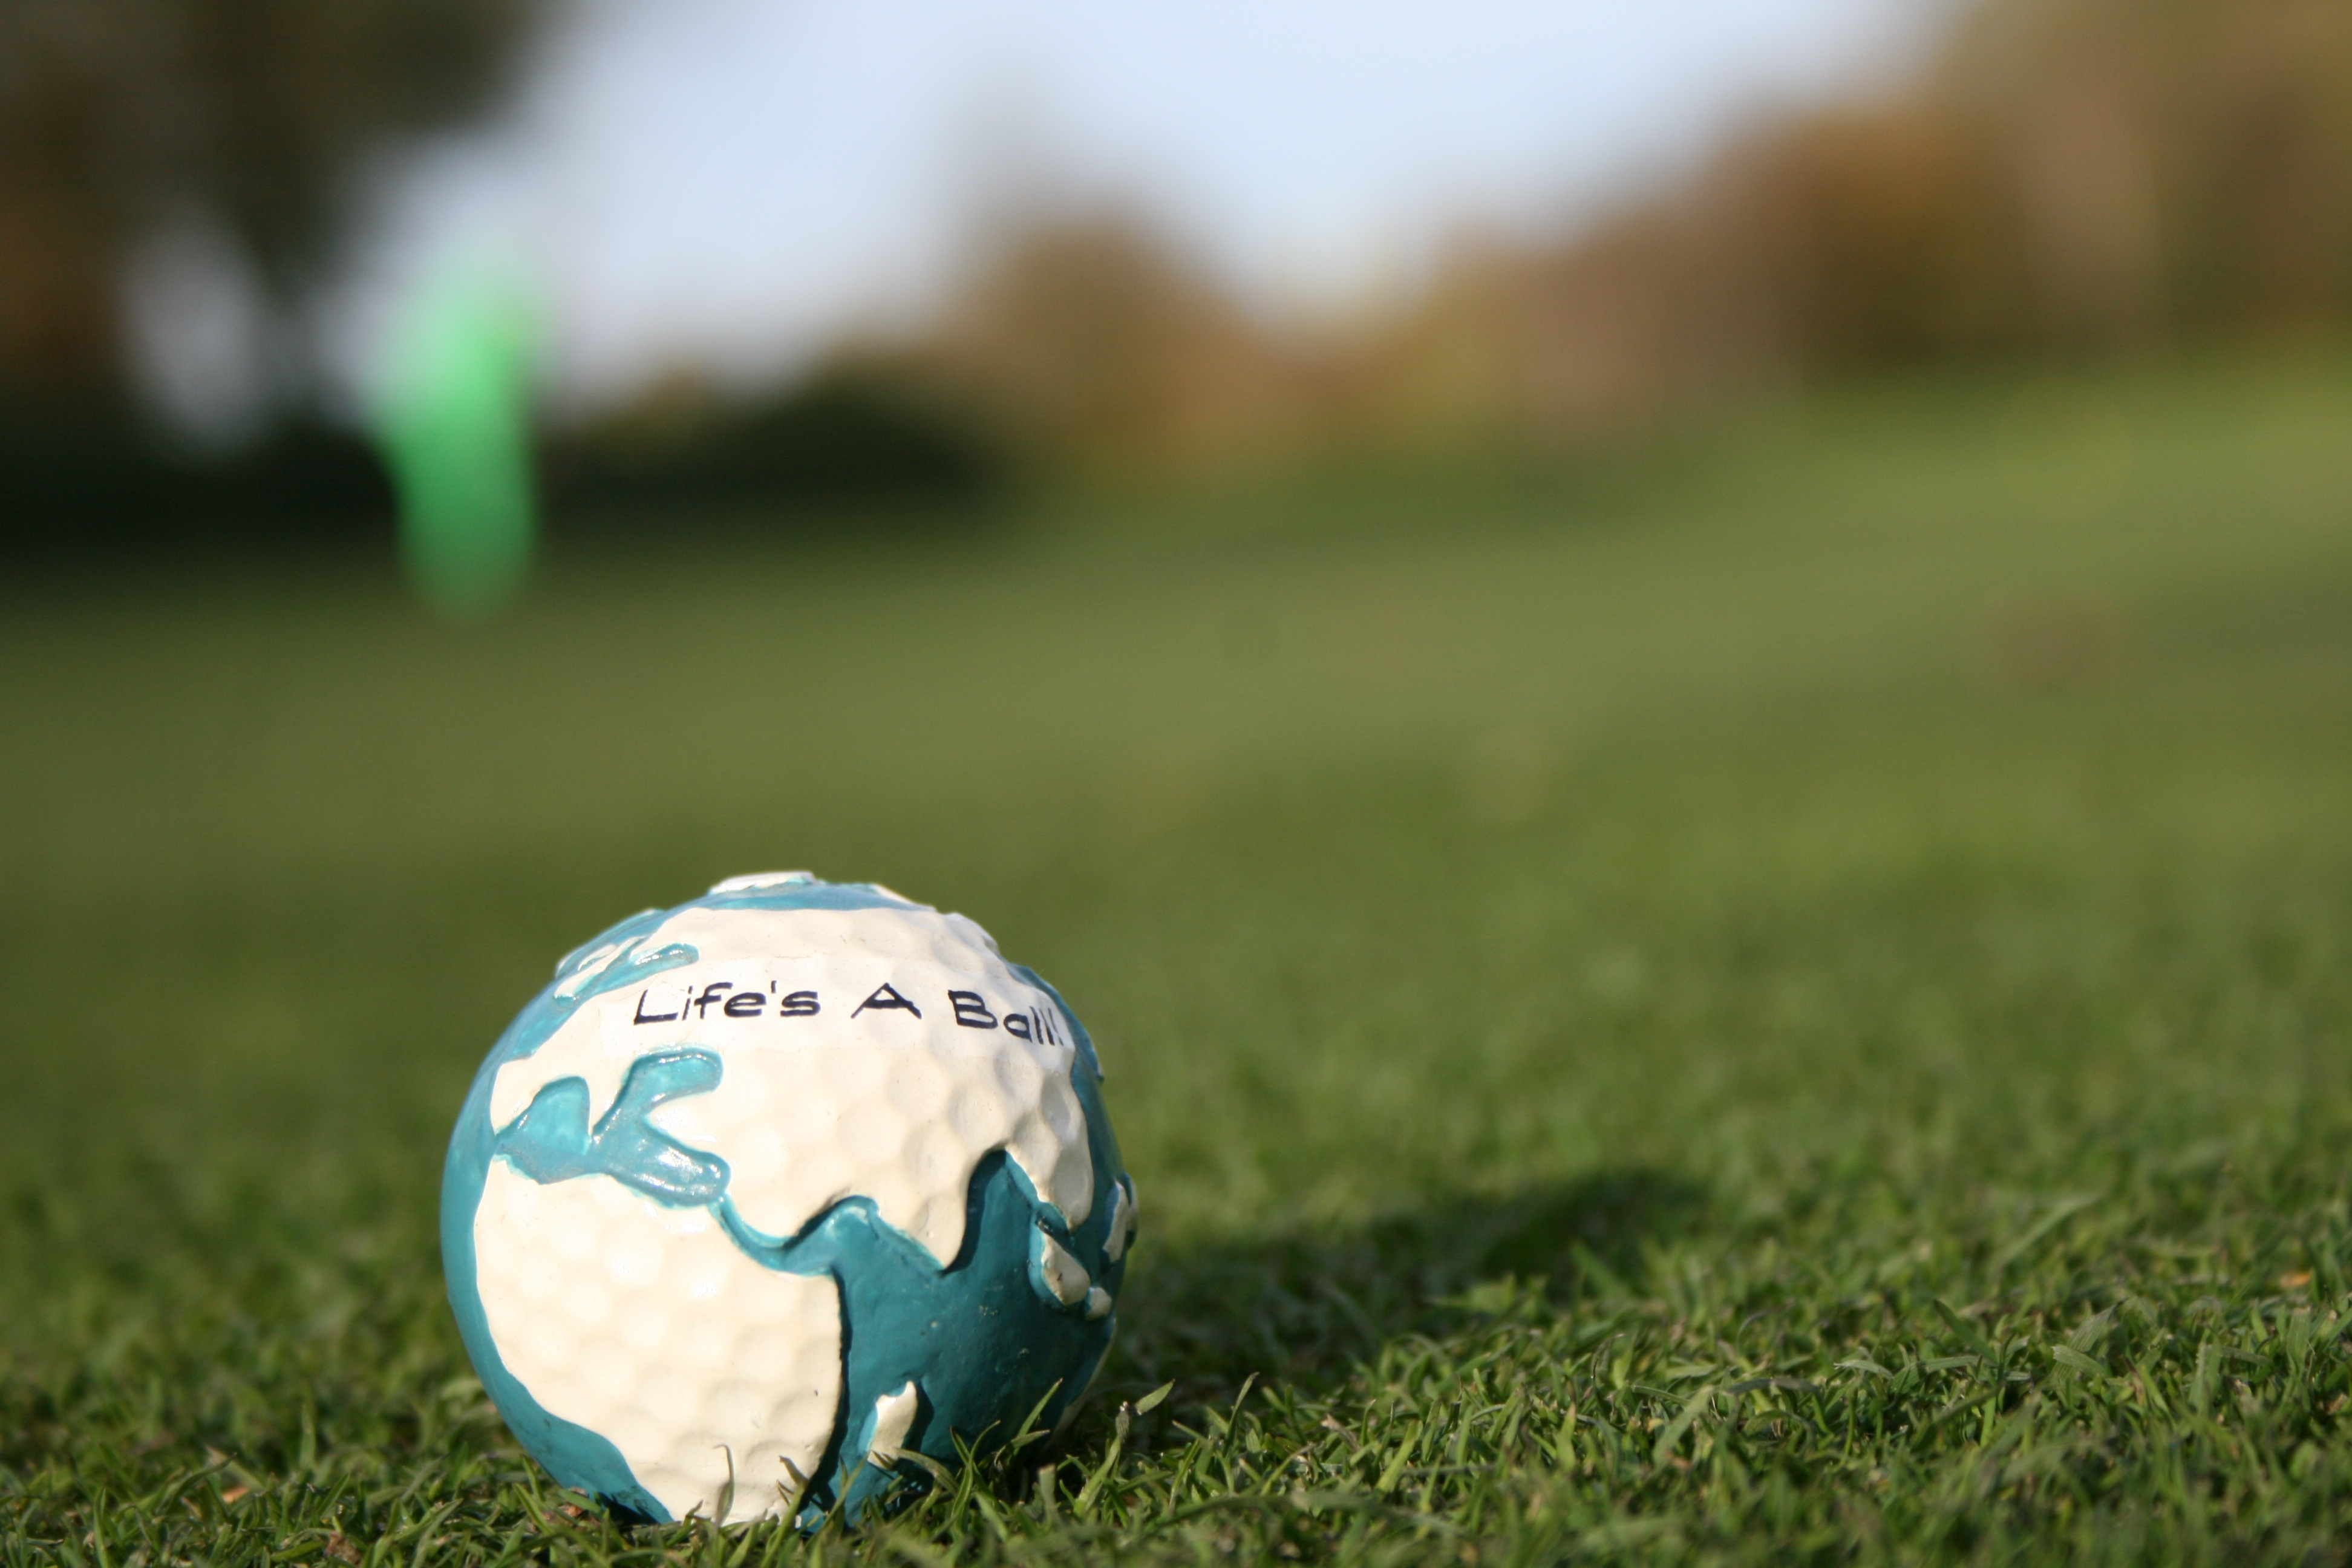 87060 download wallpaper Sports, Grass, Golf, Ball screensavers and pictures for free